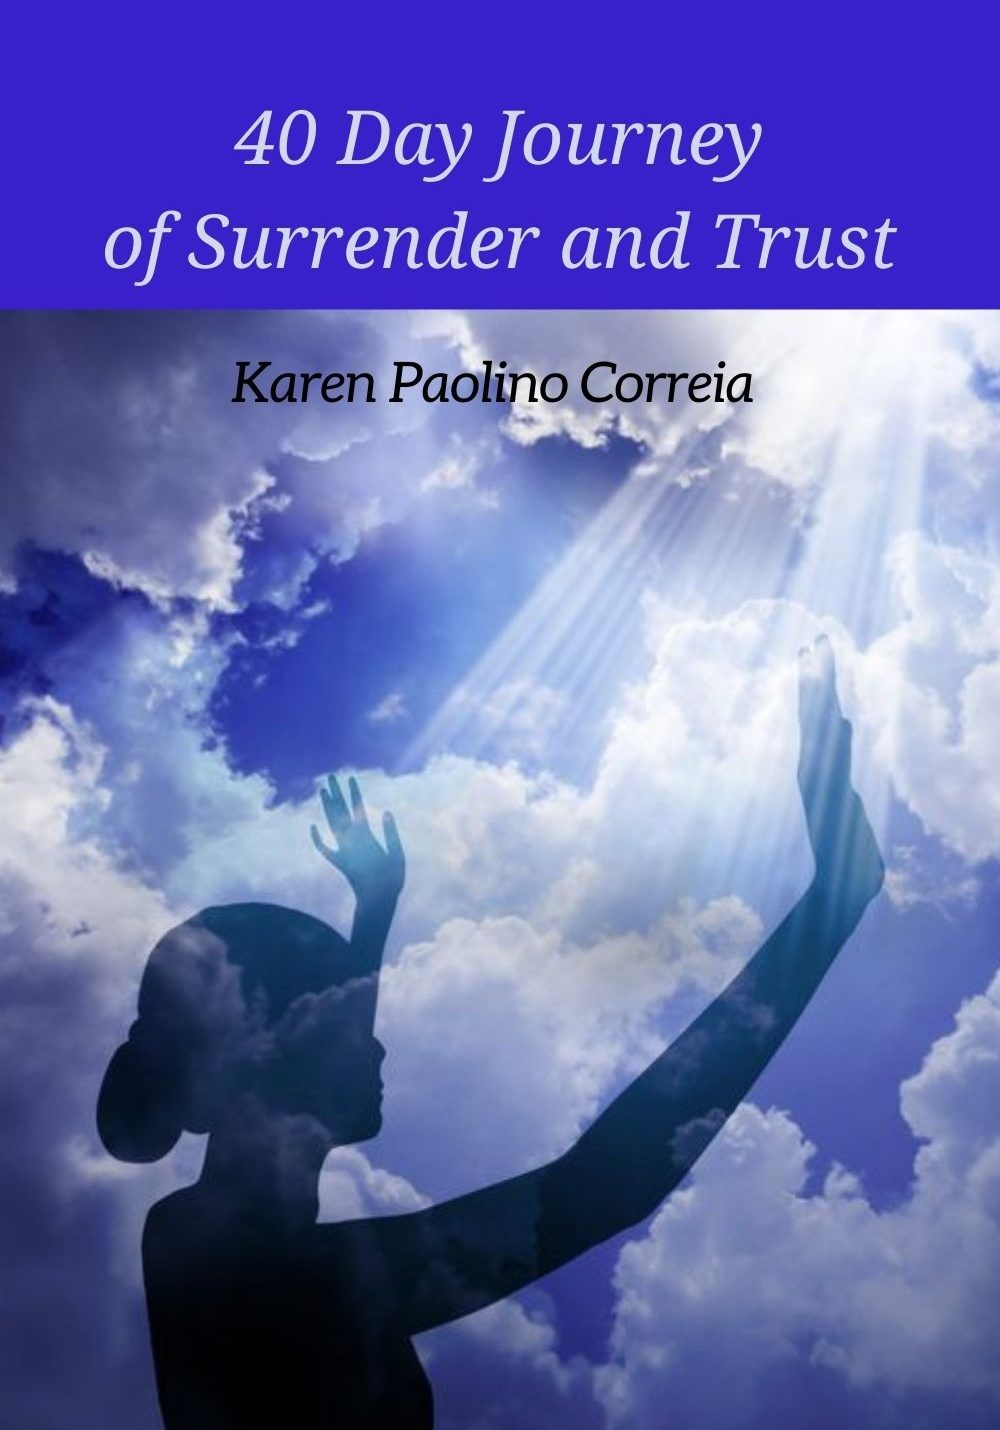 40 Day Journey of Surrender and Trust